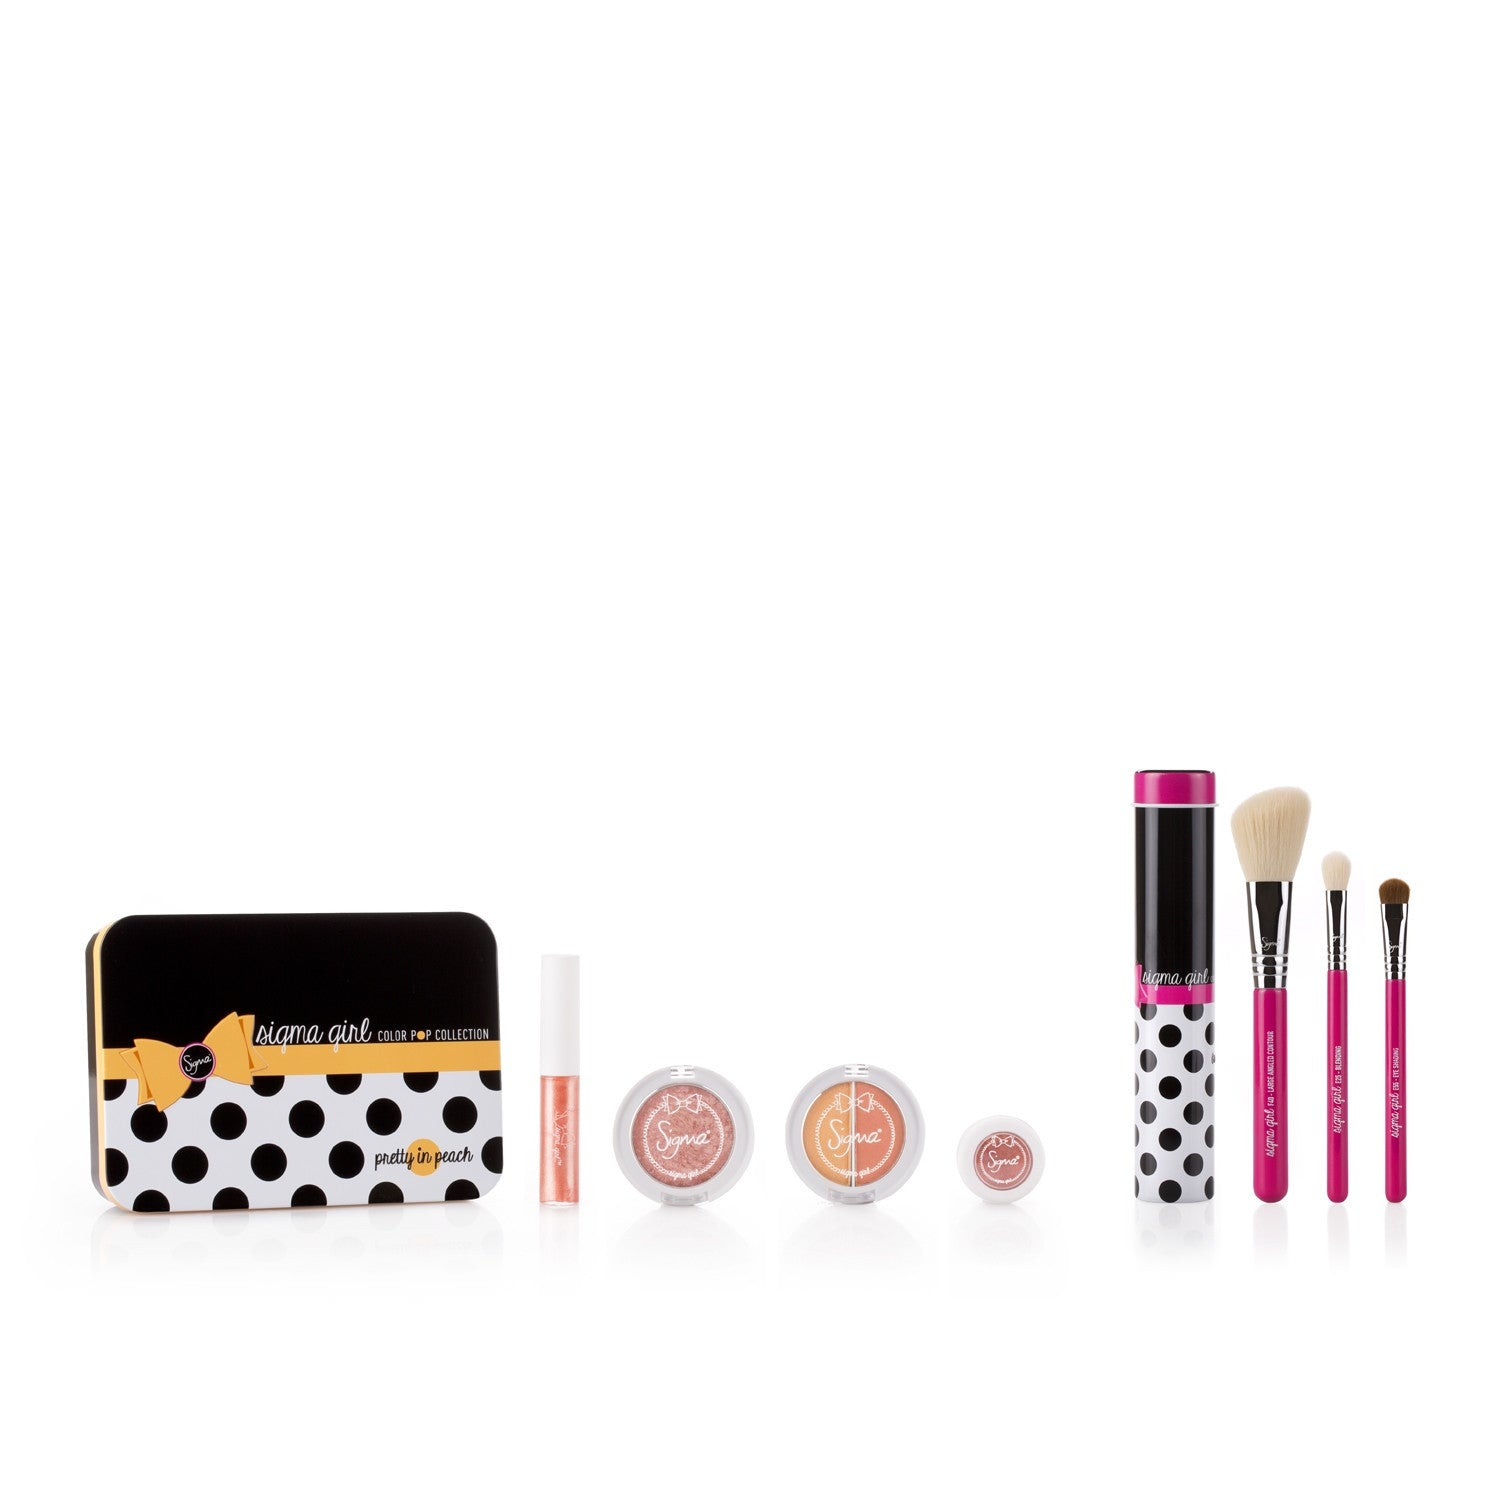 Sigma Girl Color Pop Makeup & Brush Set - Pretty in Peach